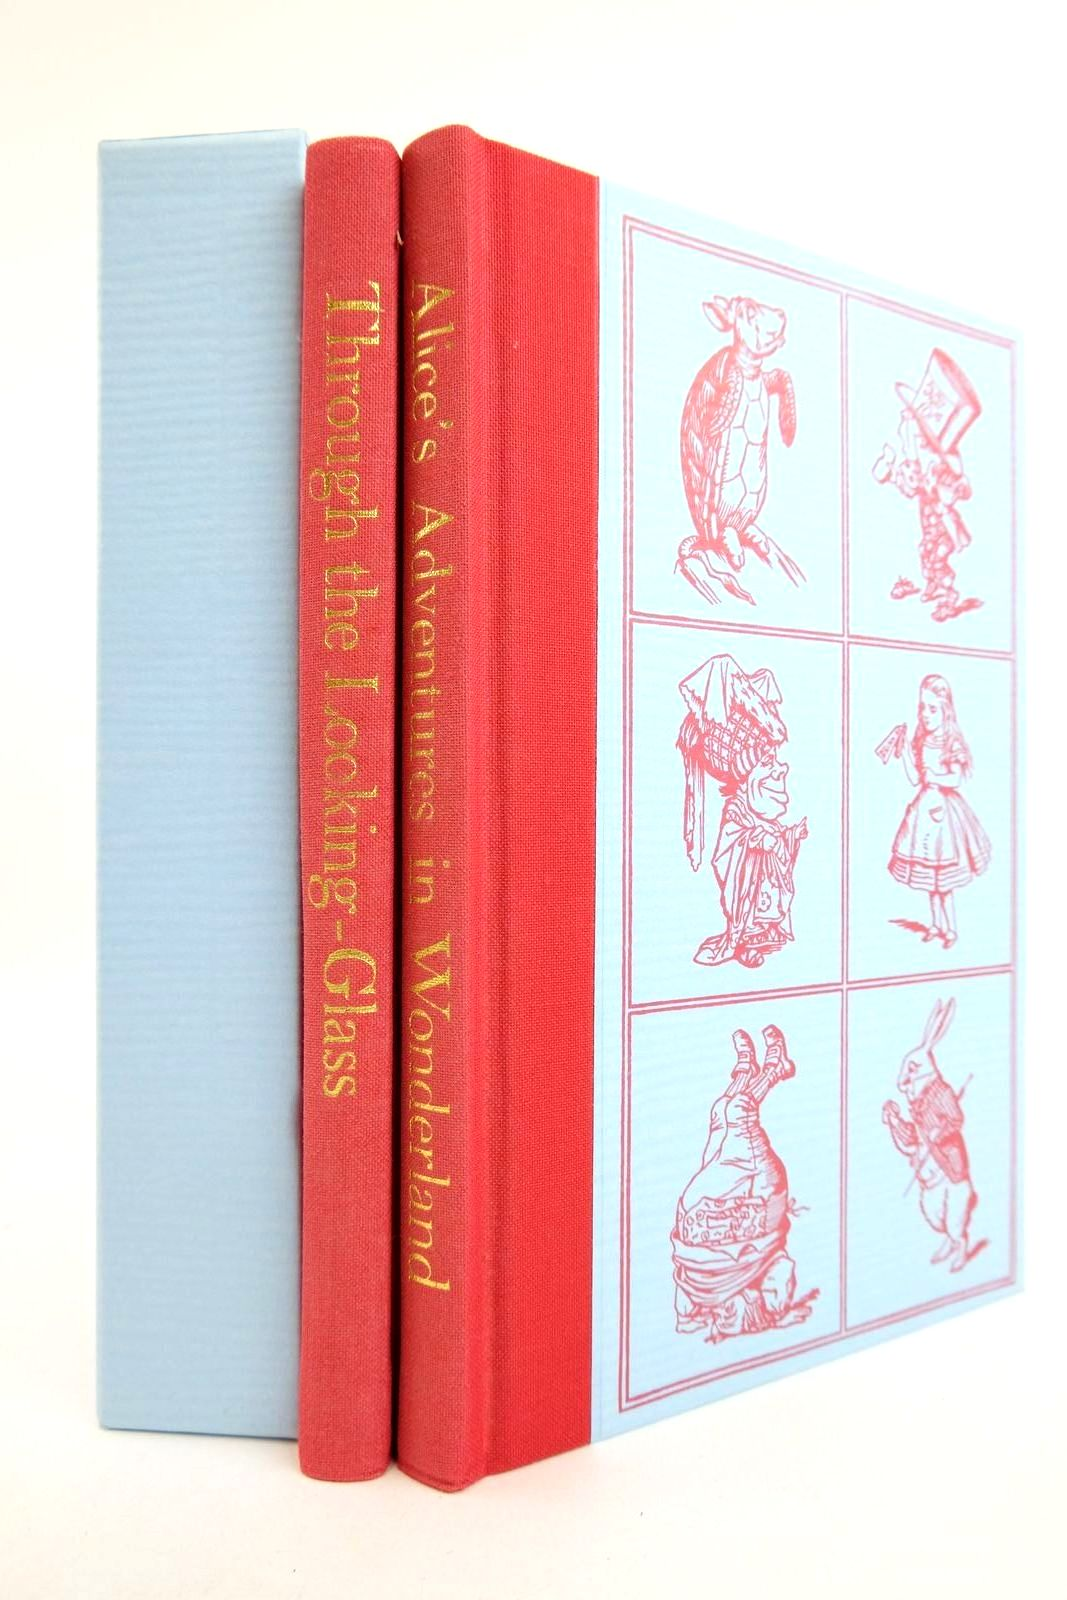 Photo of ALICE'S ADVENTURES IN WONDERLAND AND THROUGH THE LOOKING GLASS (TWO VOLUMES) written by Carroll, Lewis illustrated by Tenniel, John published by Folio Society (STOCK CODE: 2133163)  for sale by Stella & Rose's Books